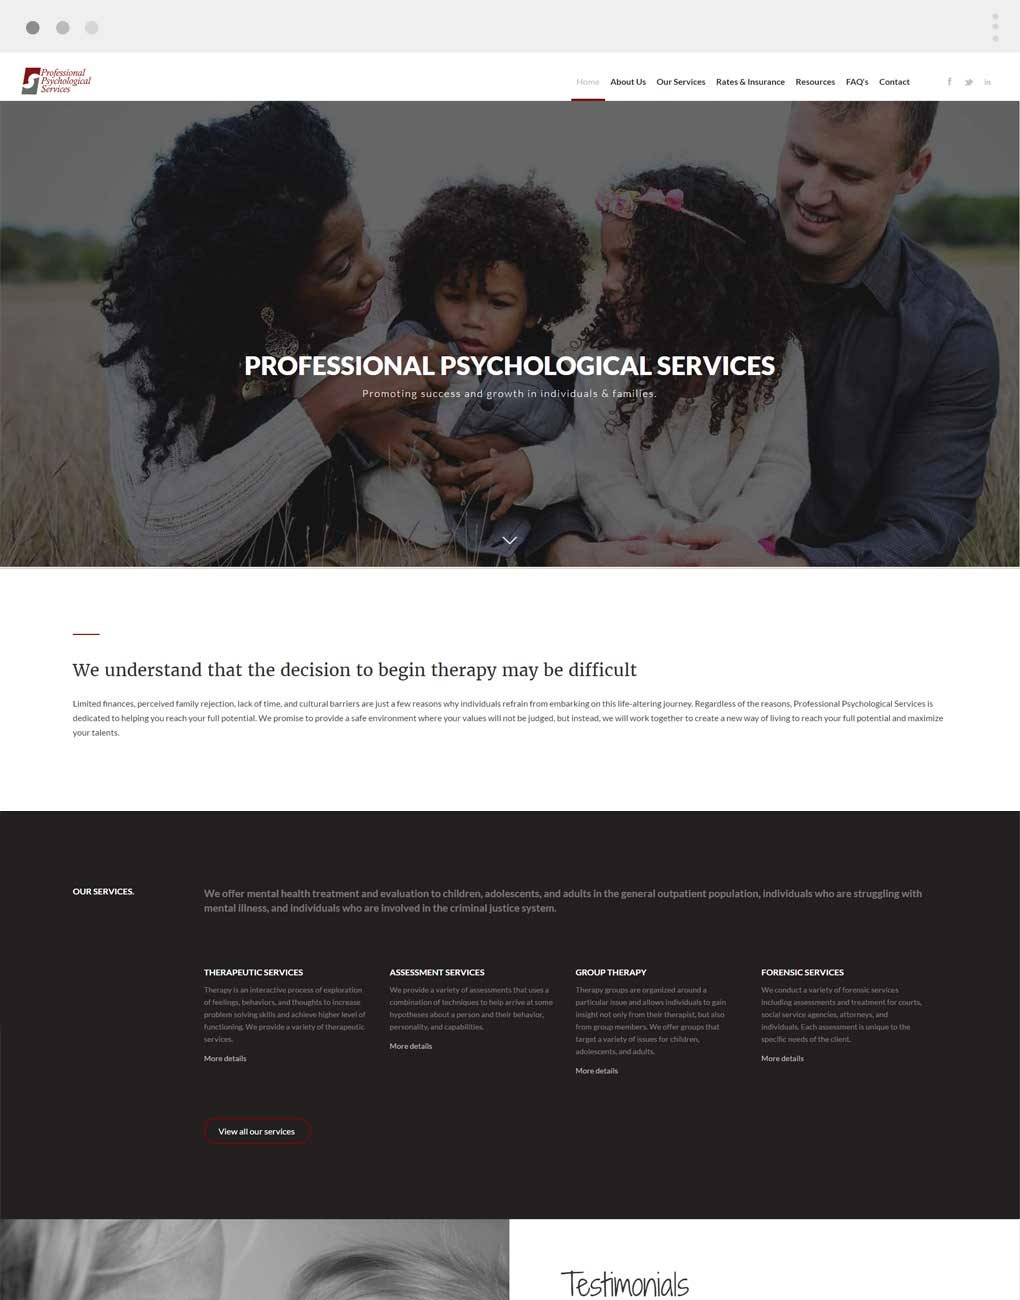 Professional Psychological Services